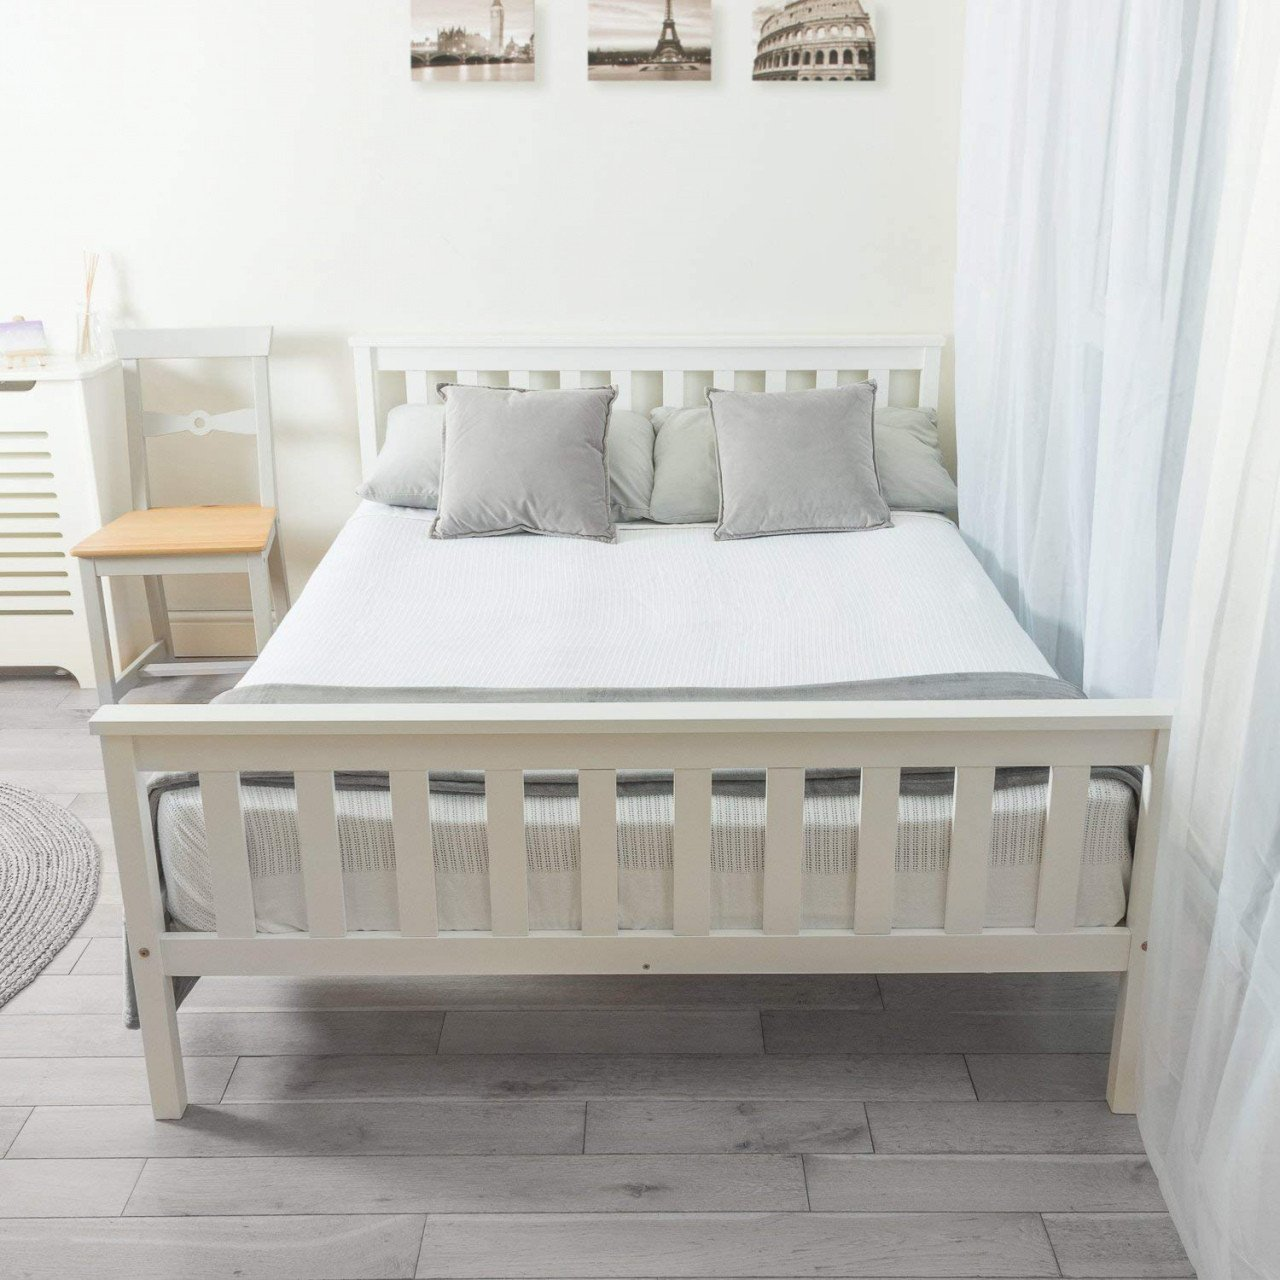 White Wicker Bedroom Furniture Luxury solid Wood Bedroom Furniture — Procura Home Blog